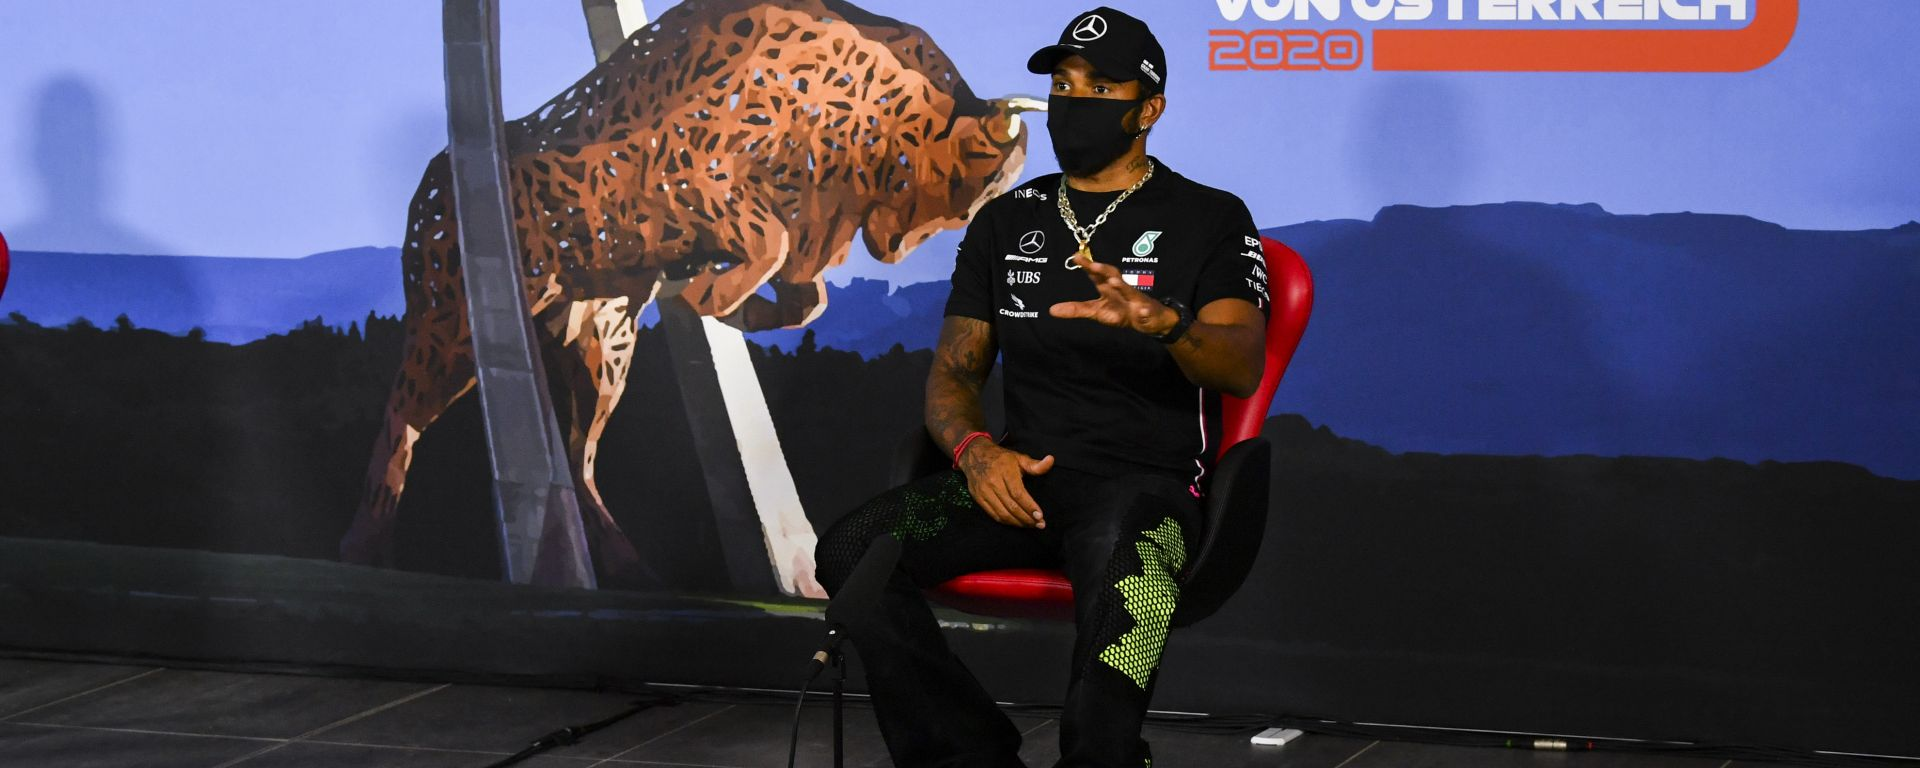 F1 GP Austria 2020, Red Bull Ring: Lewis Hamilton (Mercedes) in conferenza stampa